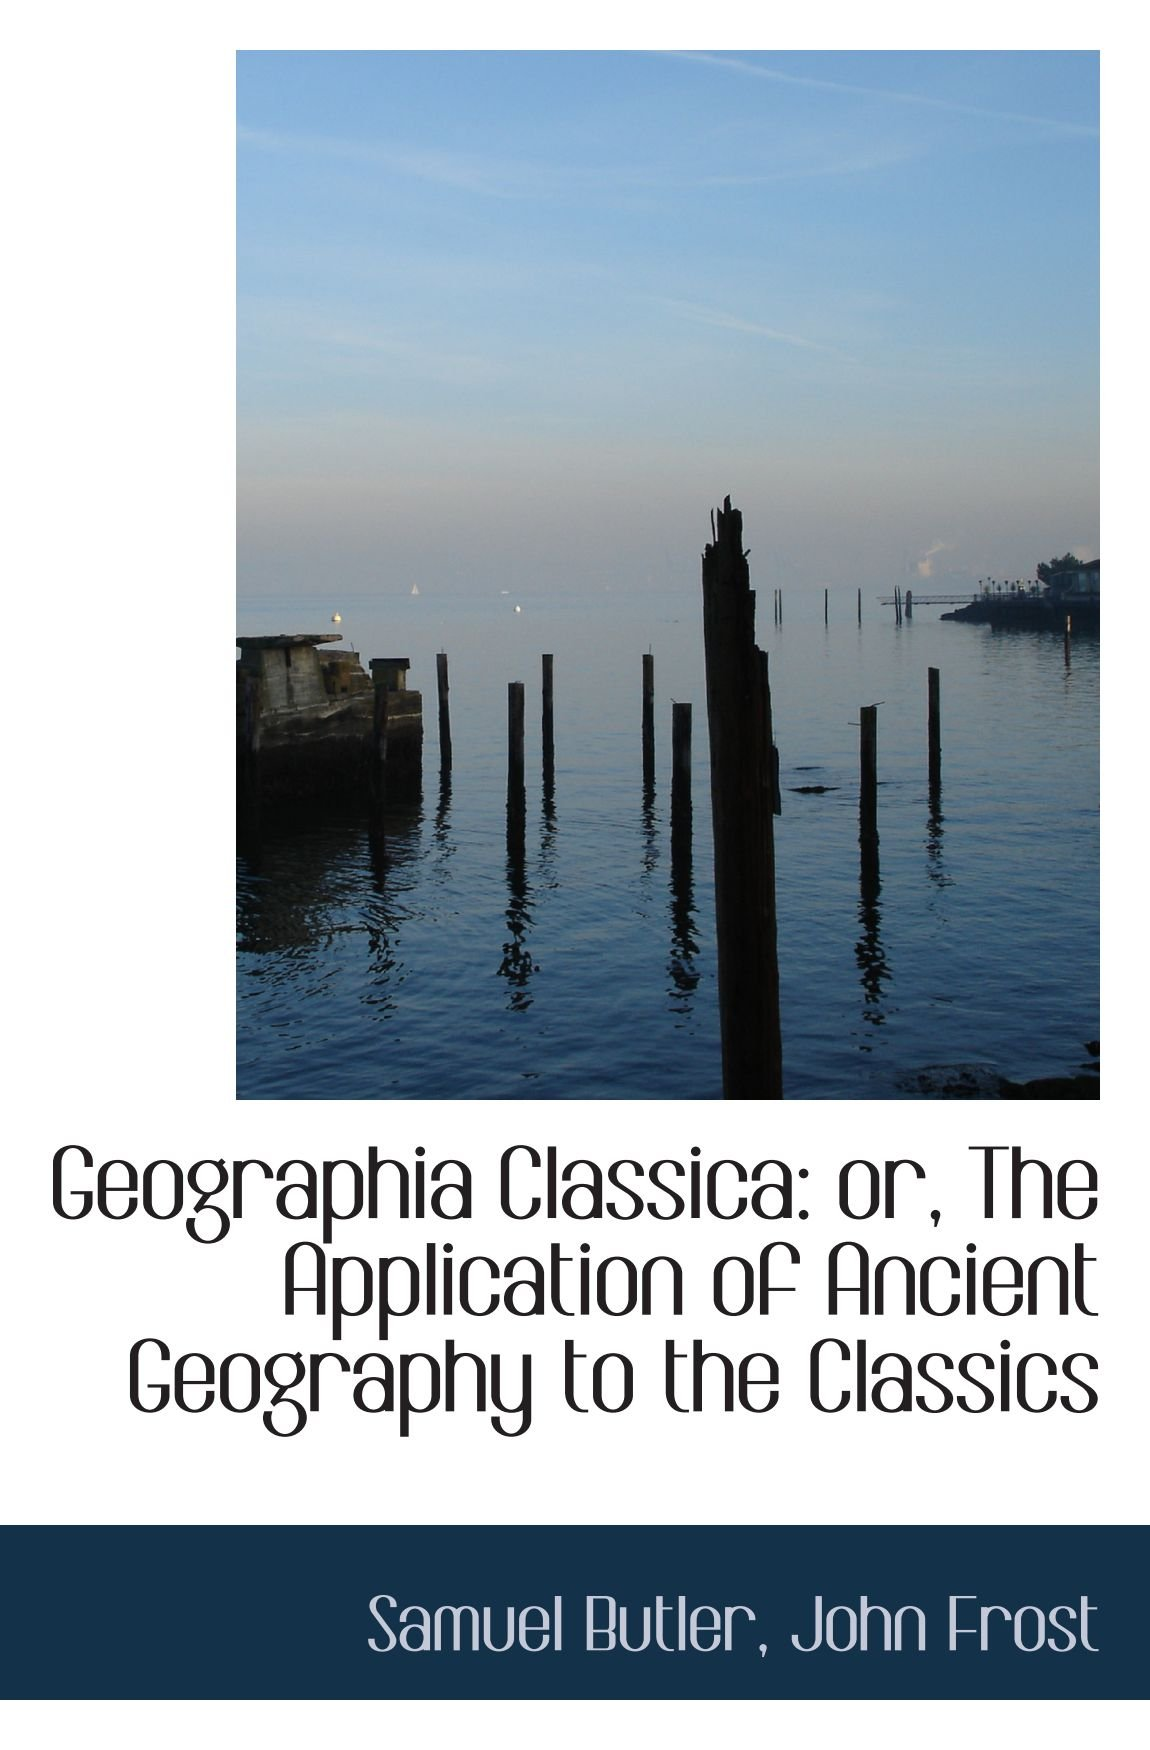 Geographia Classica: or, The Application of Ancient Geography to the Classics pdf